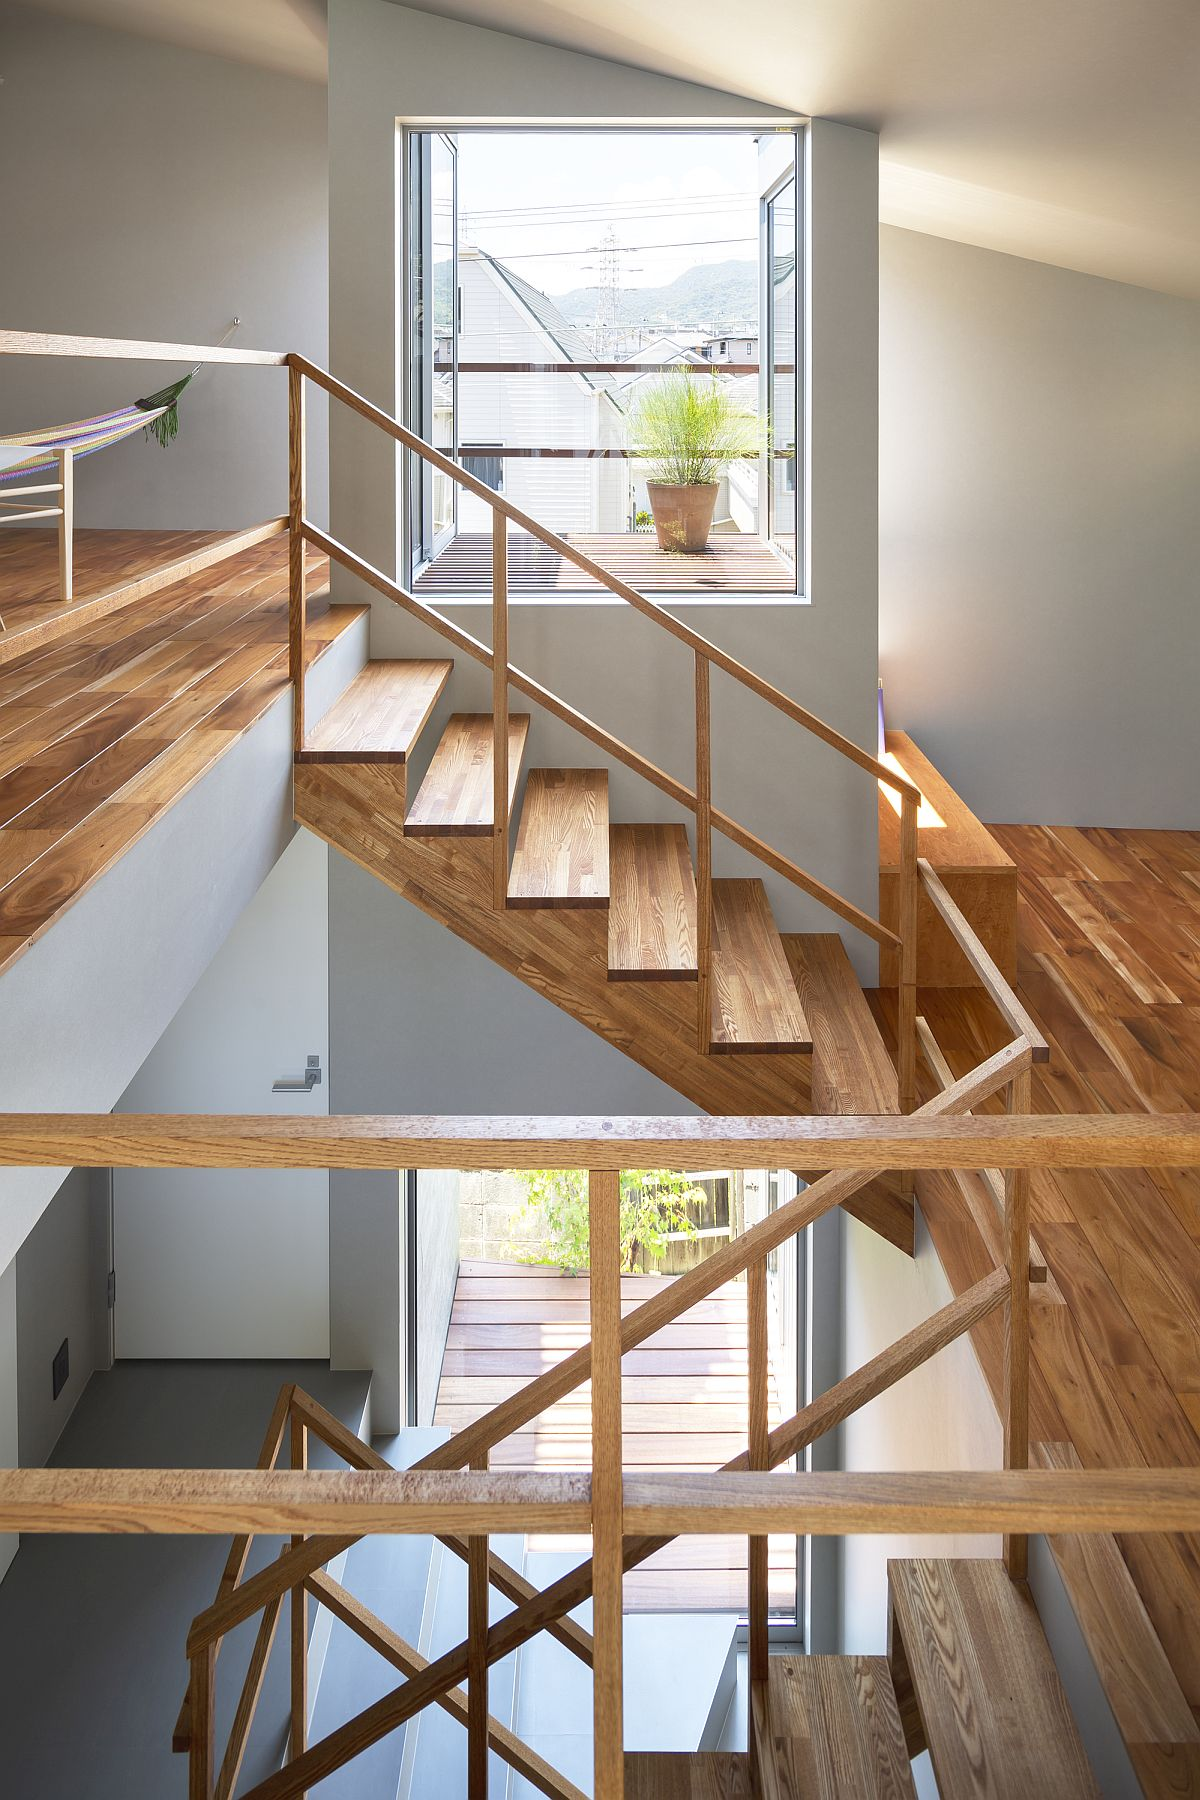 Ingenious-design-of-small-home-with-split-upper-levels-and-ample-natural-light-41098